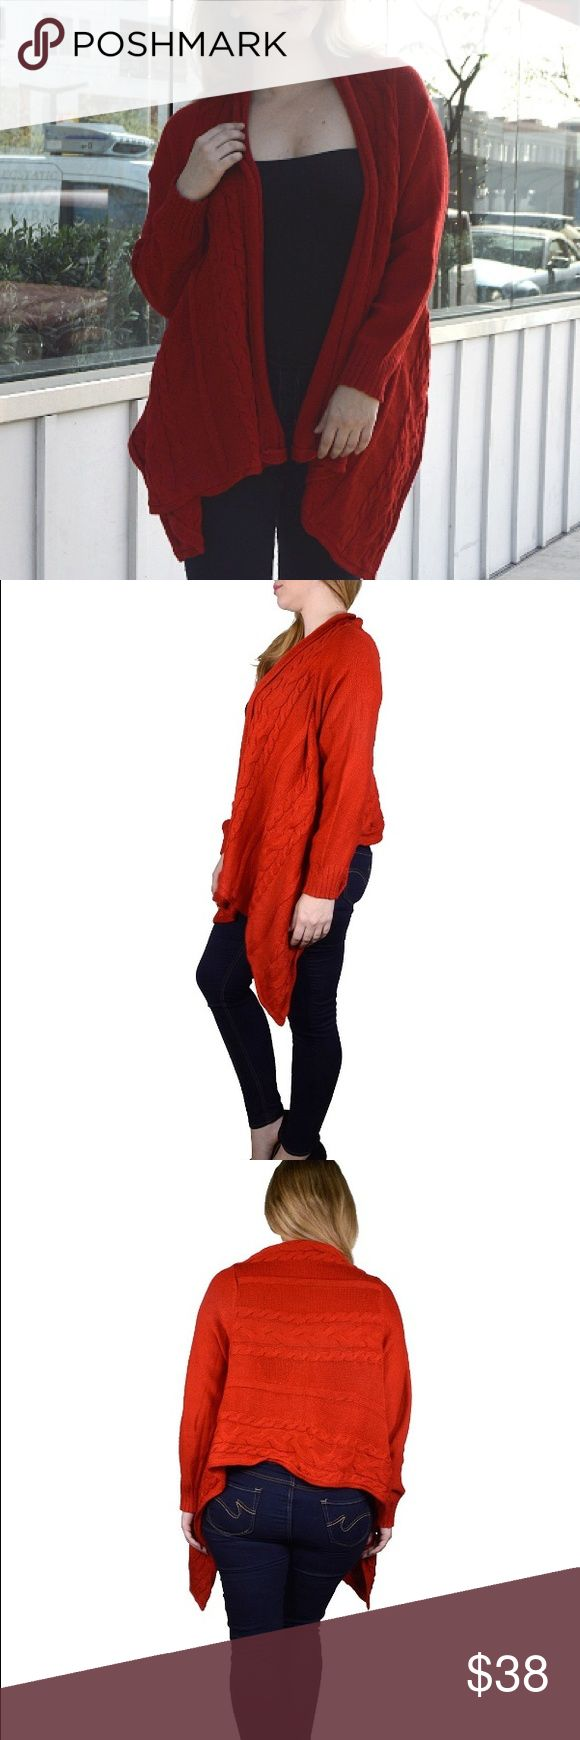 Plus Size Red Cardigan Sweater New stylish red cardigan sweater. Available in sizes 2X and 4X. Sweaters Cardigans